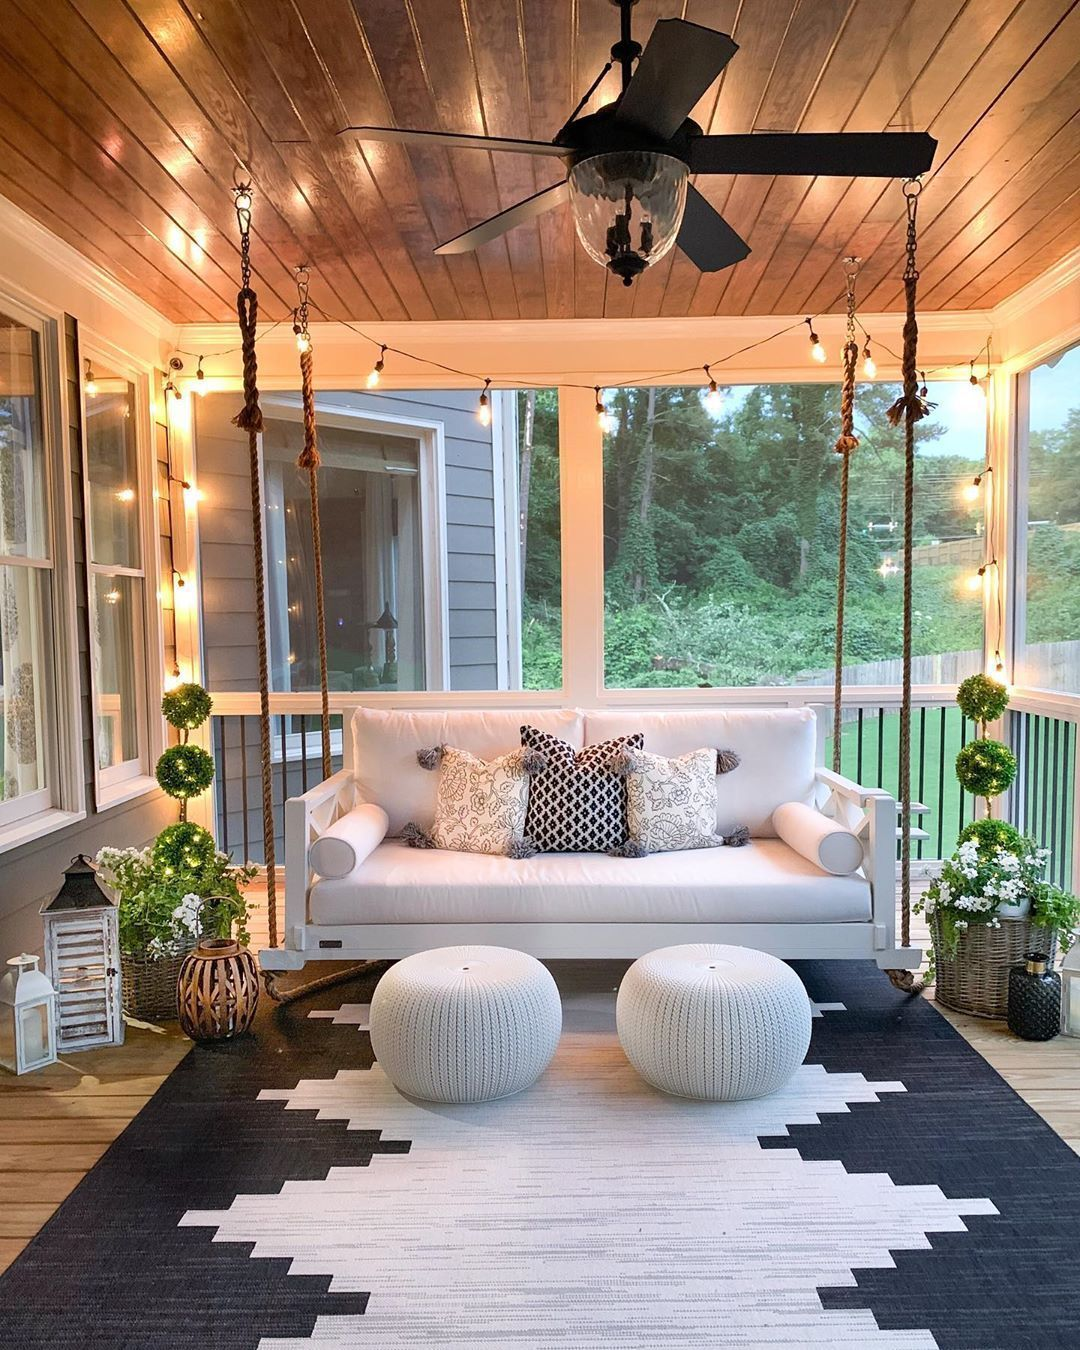 Photo of #decor Rethink Your Outdoor Space by Channeling This Dreamy Porch Swing | Hunker – decorideas